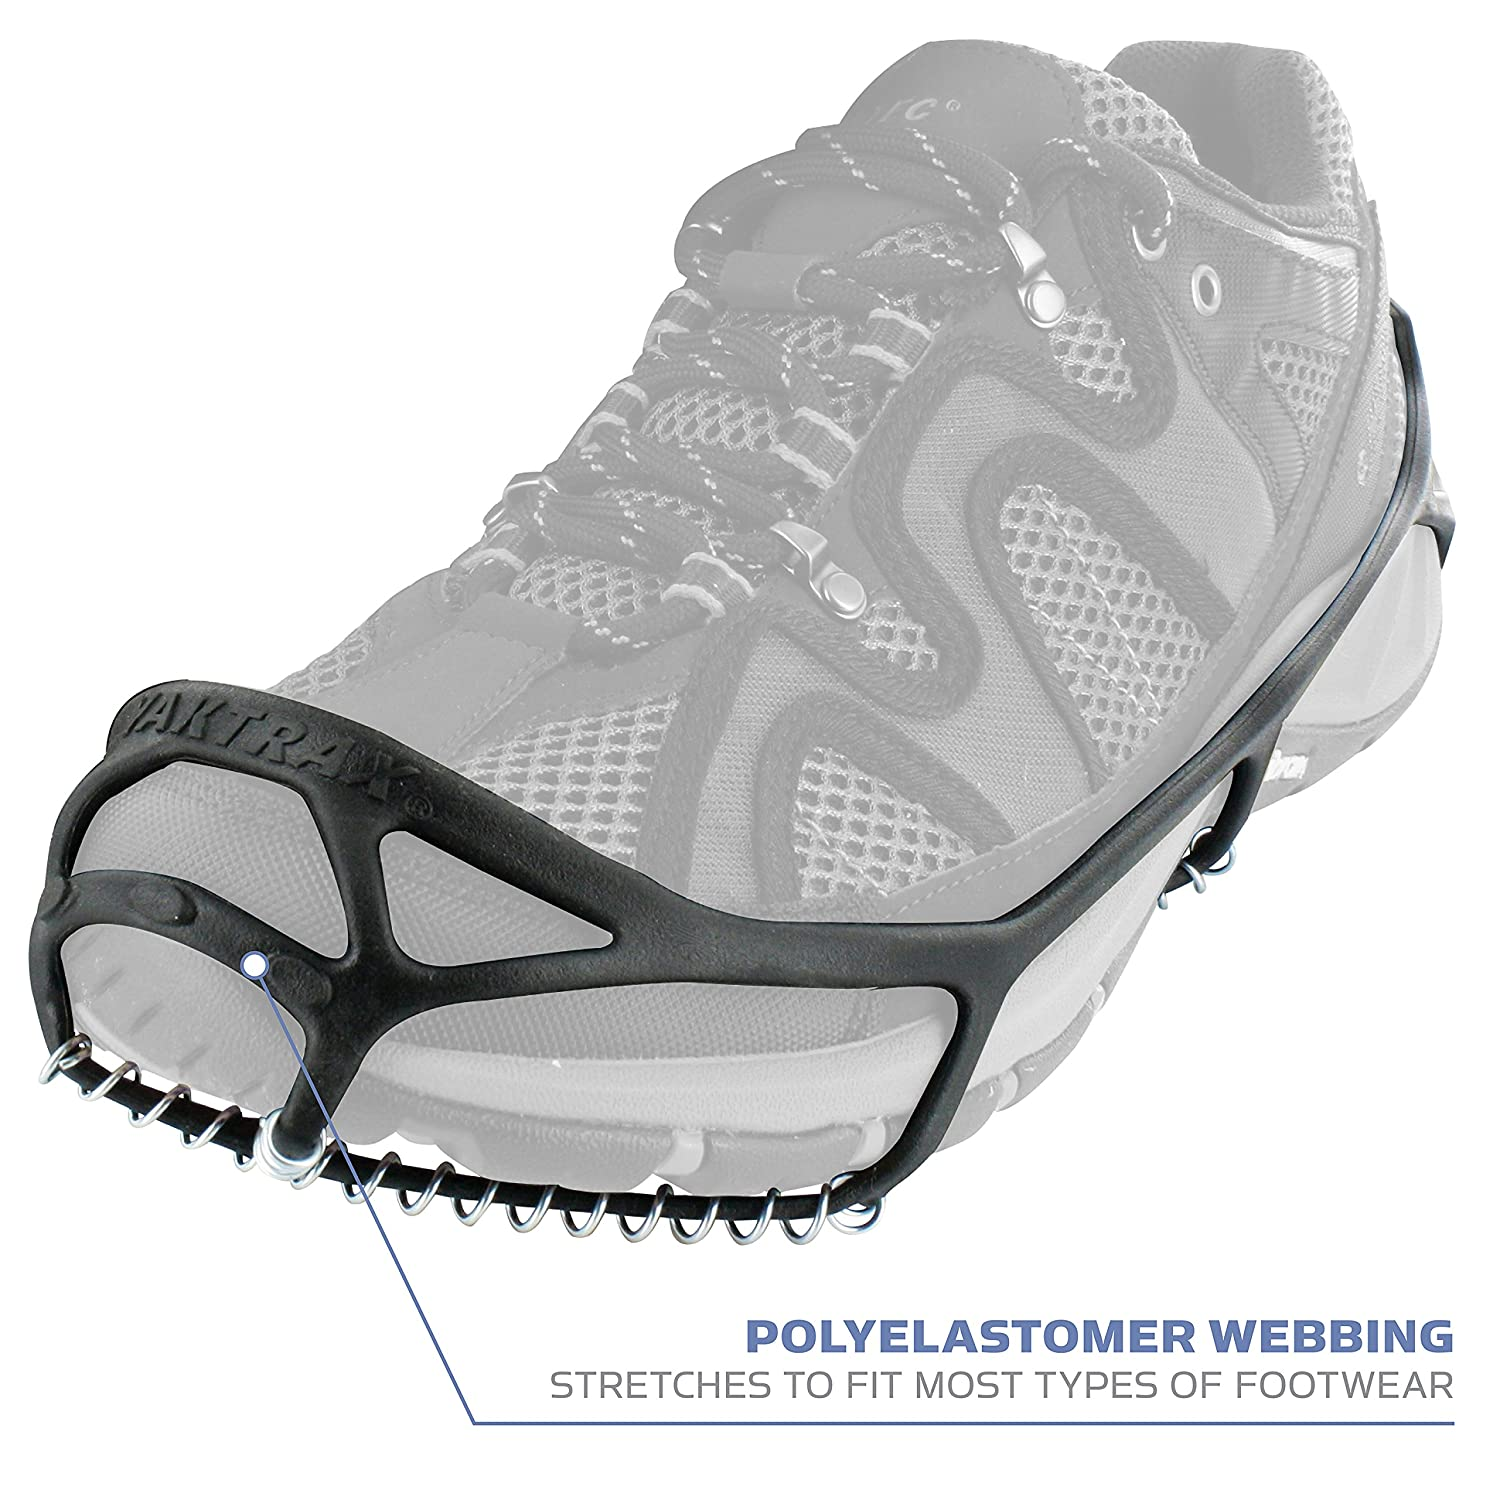 6d715b0bb Amazon.com  Yaktrax Walk Traction Cleats for Walking on Snow and Ice (1  Pair)